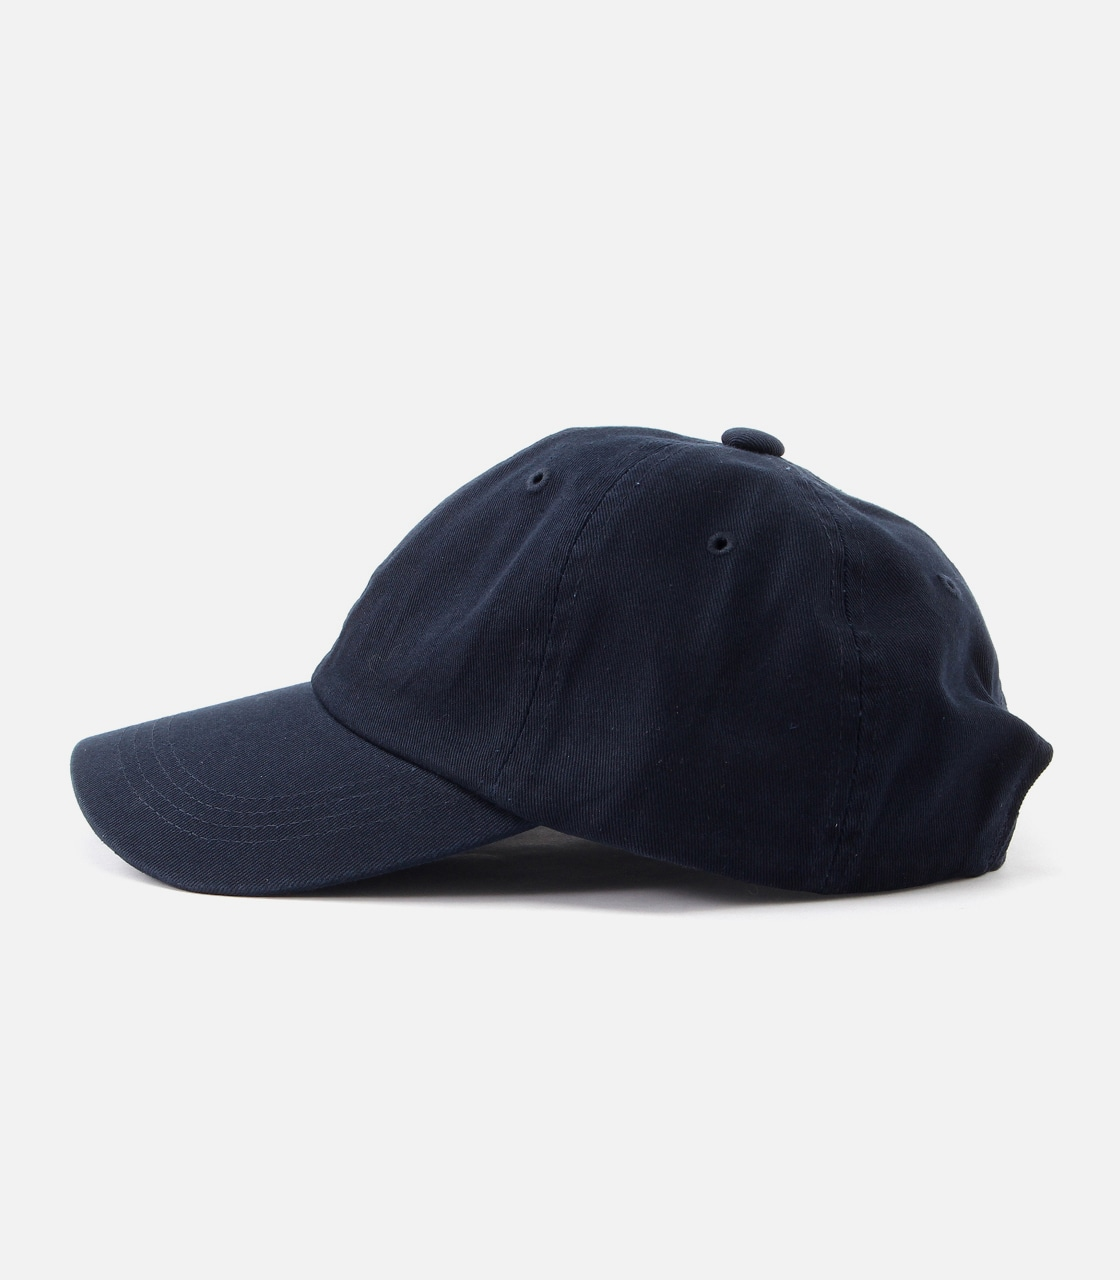 【AZUL BY MOUSSY】BASIC TWILL CAP 【MOOK49掲載 90020】 詳細画像 NVY 4